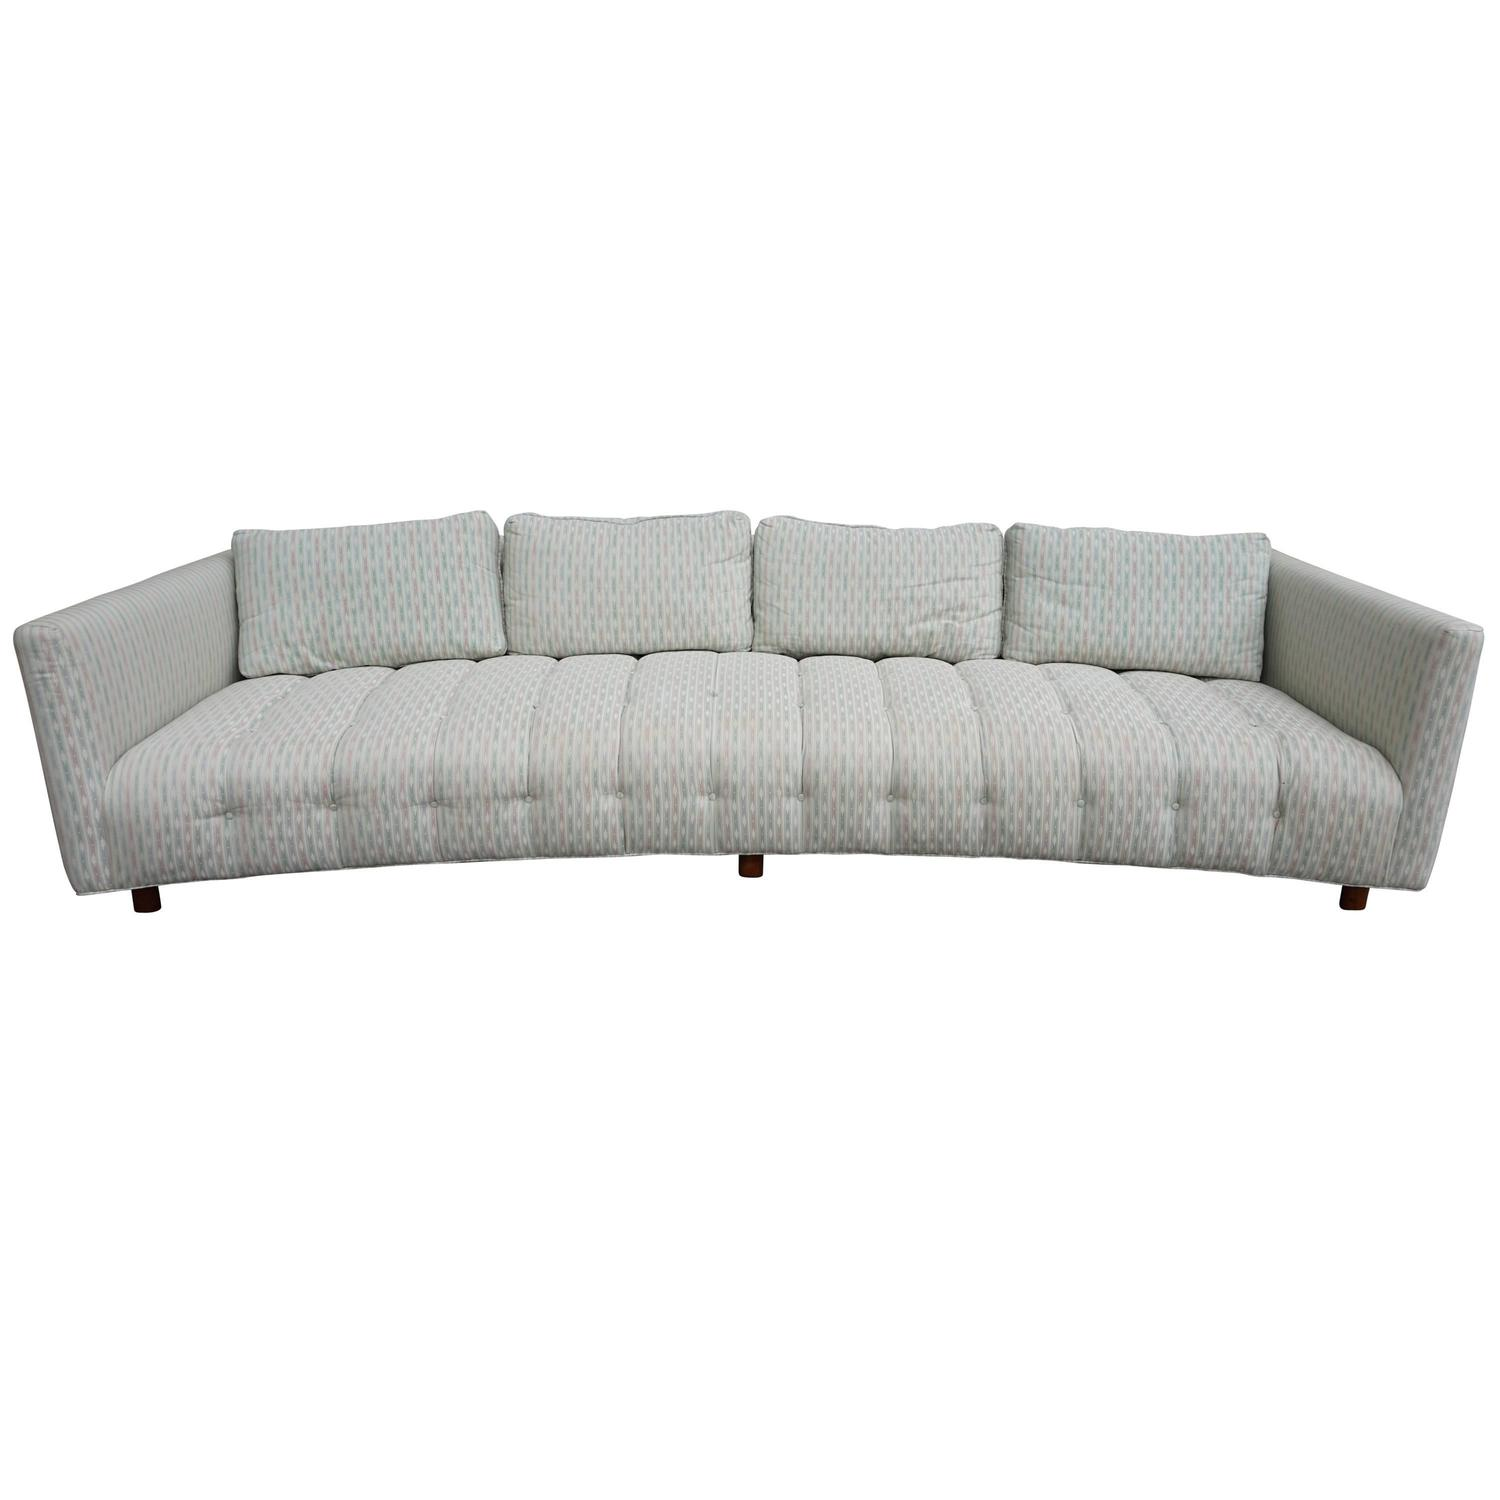 ... Long Low Curved Four-Seat Sofa, Mid-Century Modern For Sale at 1stdibs